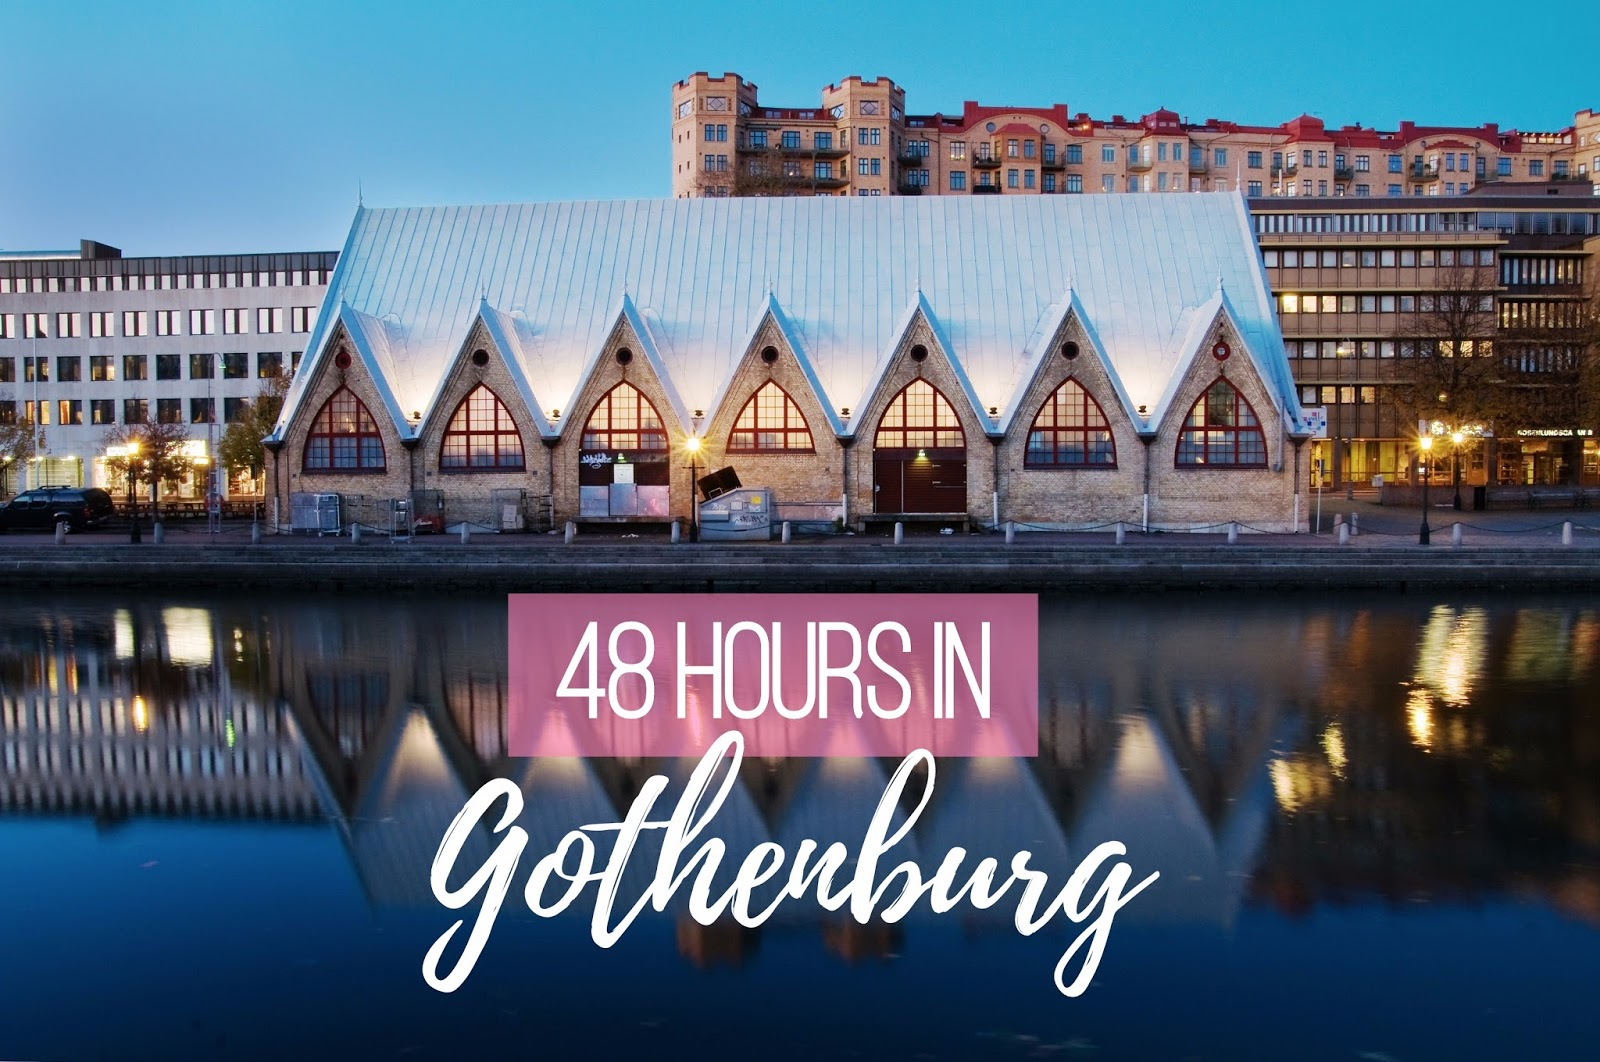 48 hours in Gothenburg